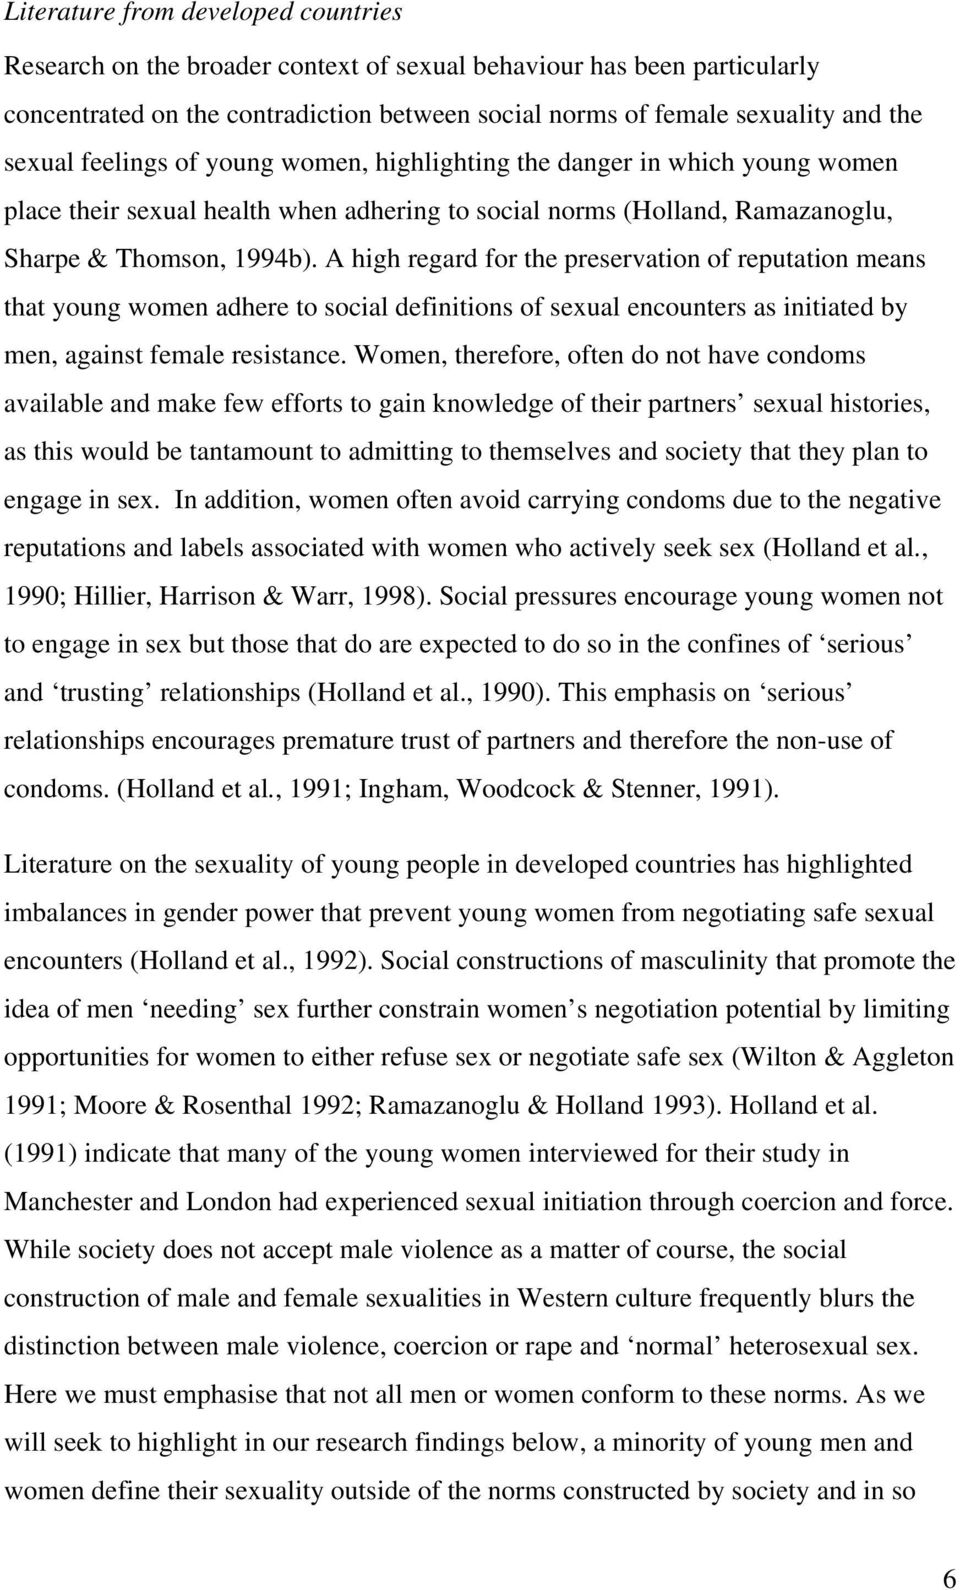 A high regard for the preservation of reputation means that young women adhere to social definitions of sexual encounters as initiated by men, against female resistance.